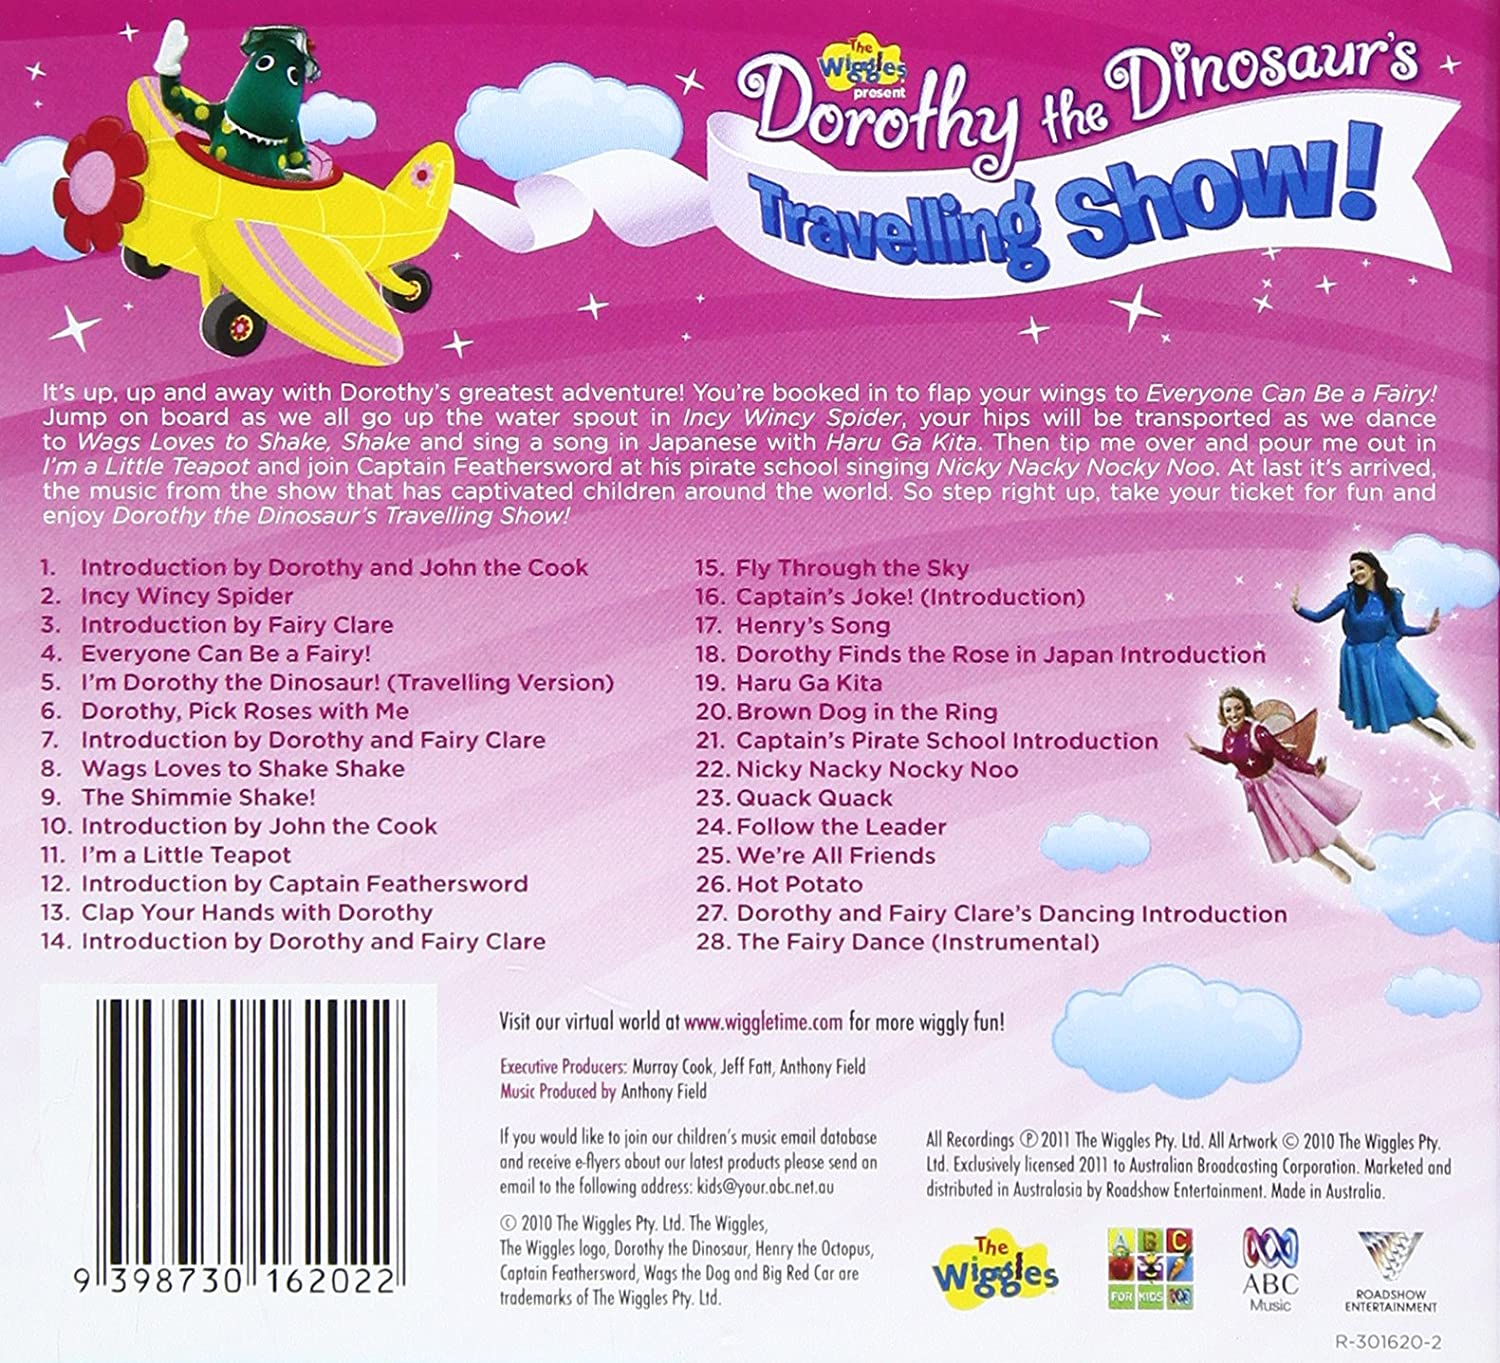 The Wiggles Dorothy Dinosaur Traveling Show